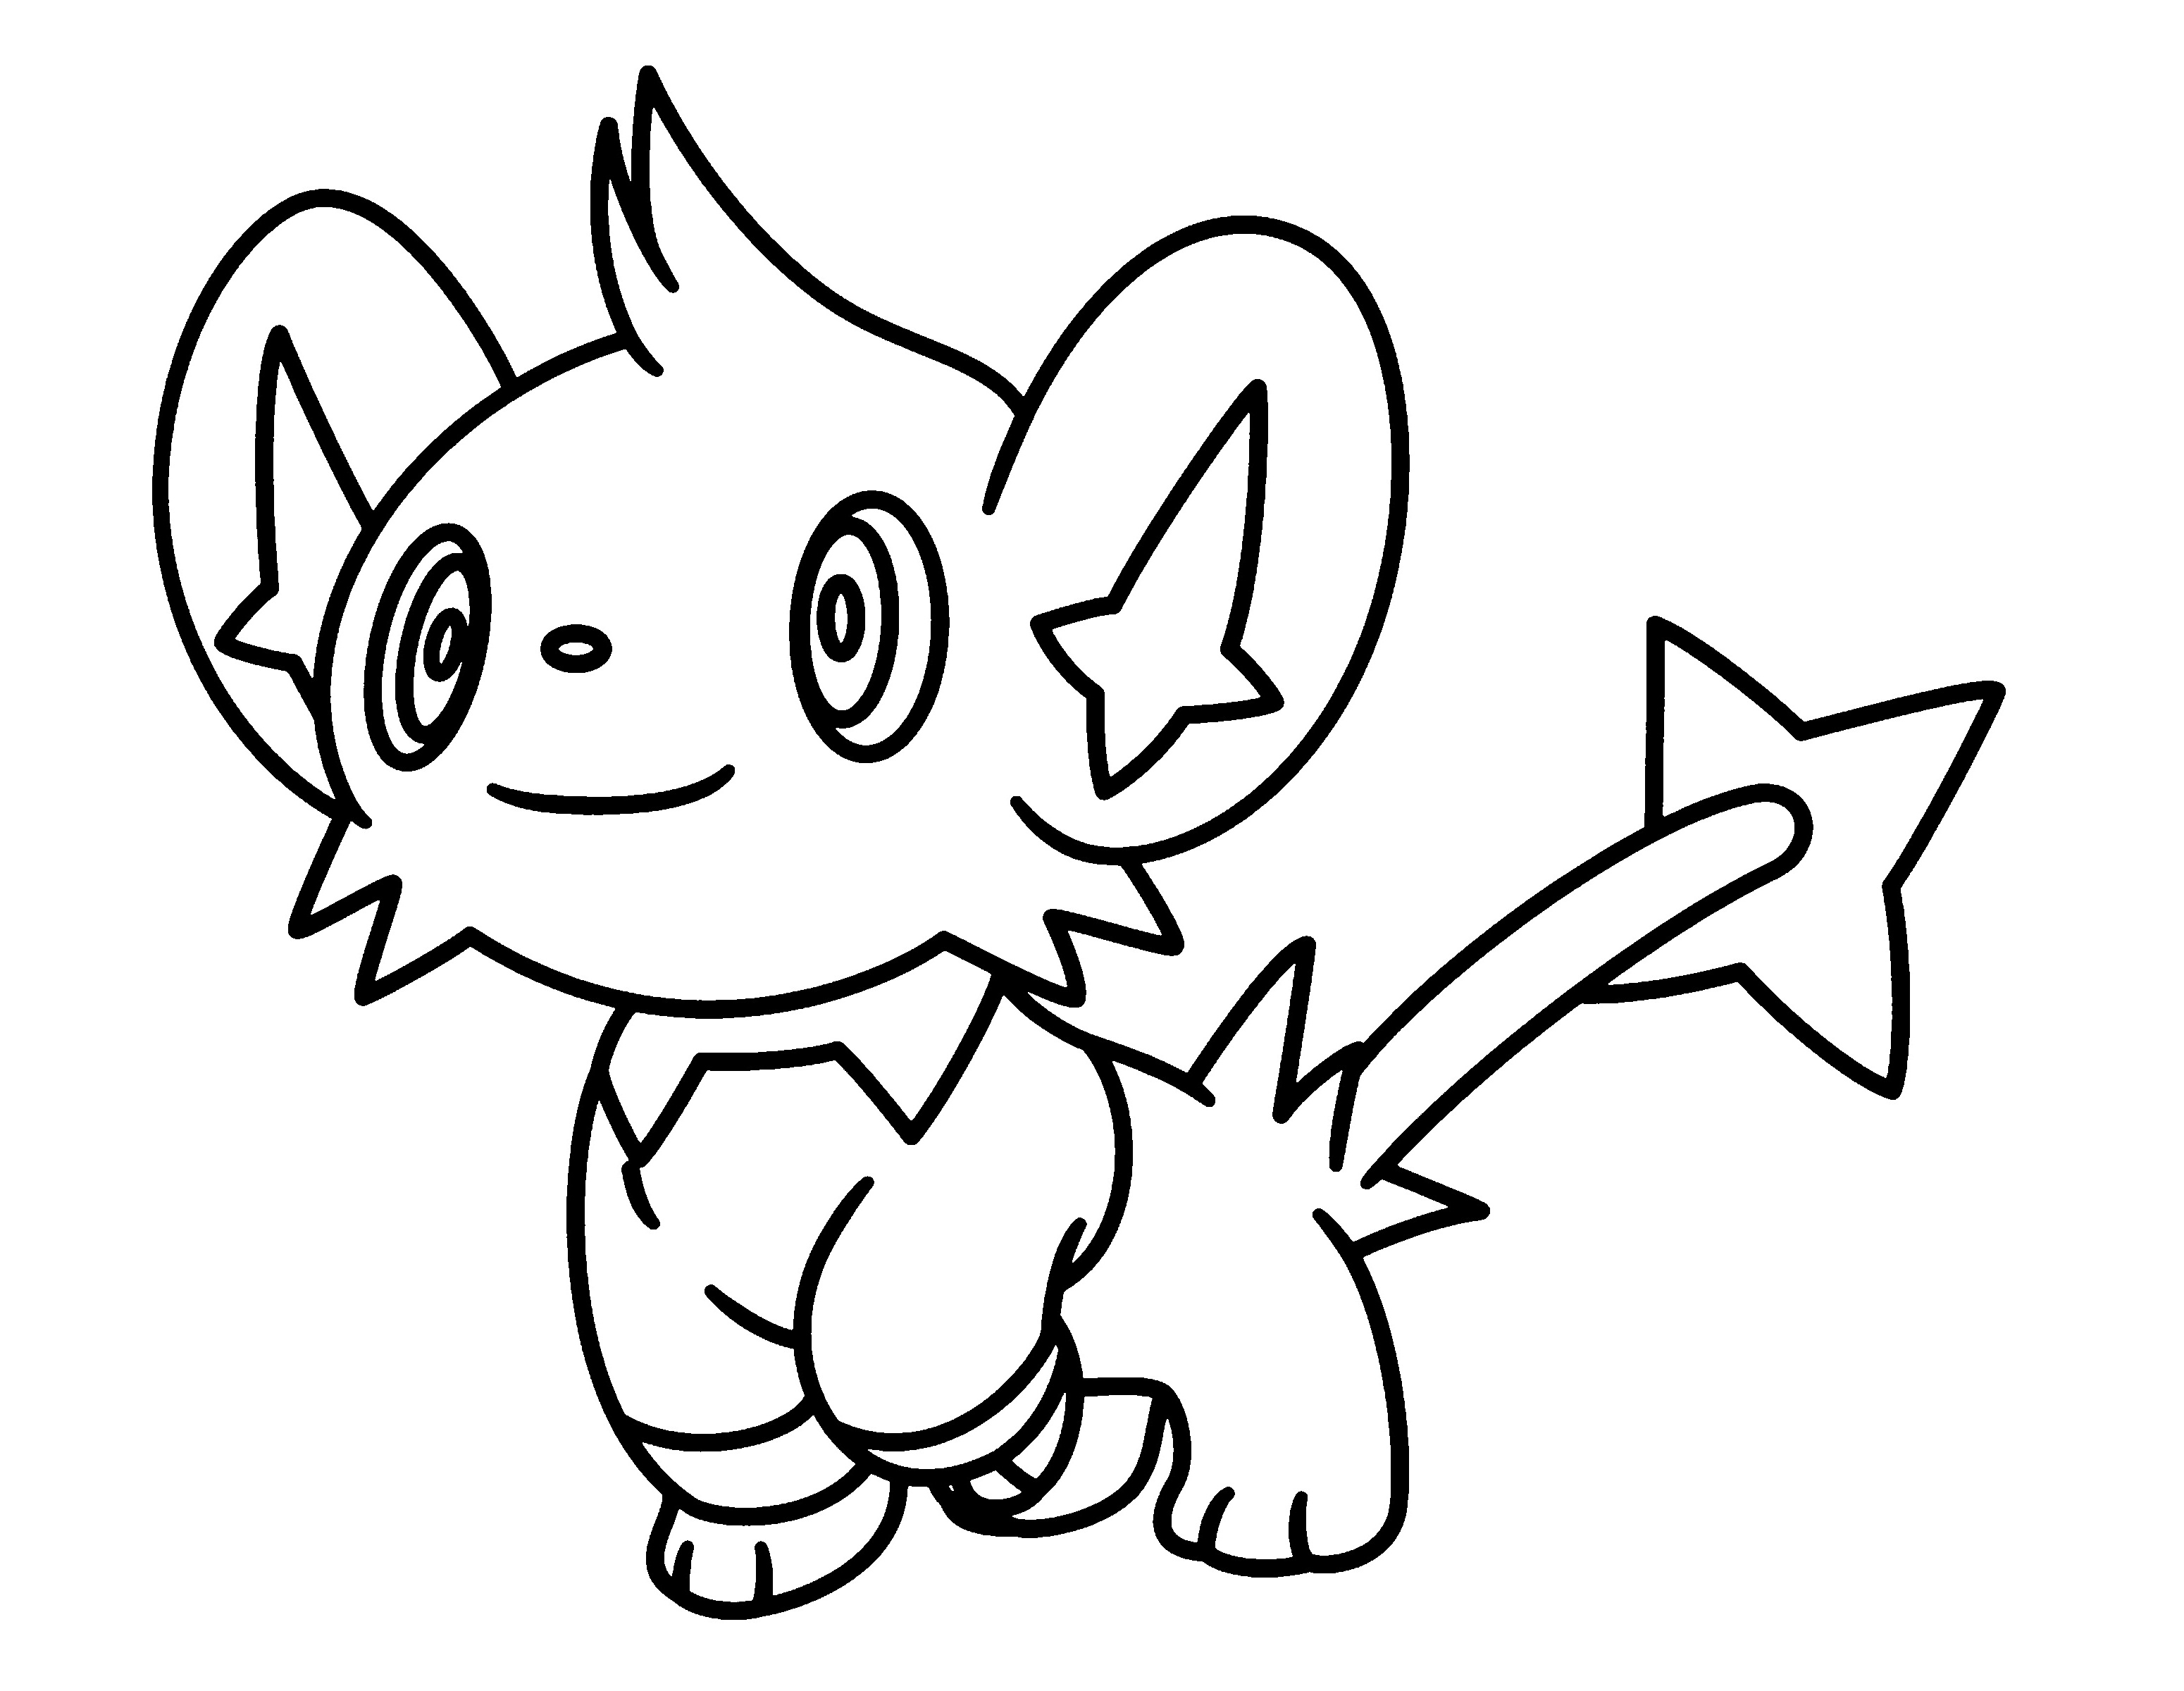 free printable coloring pages - printable pokemon coloring pages